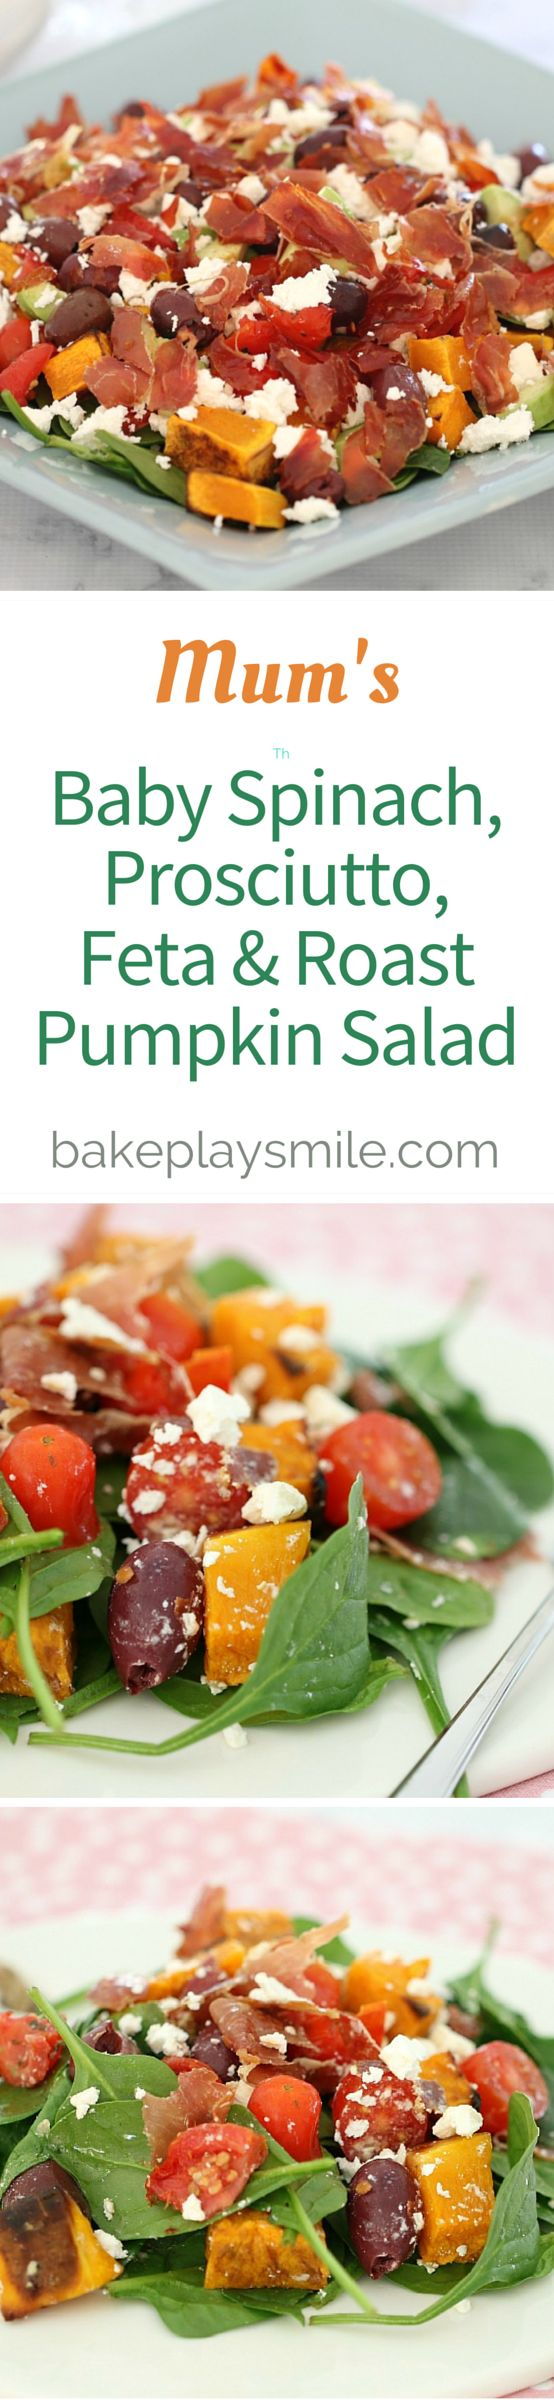 This is my Mum's salad recipe and it's AMAZING! Definitely my summer favourite - it's full of lots of yummy things: baby spinach, sundried tomatoes, olives, feta, prosciutto and roast pumpkin... Wow this sounds deliscious!